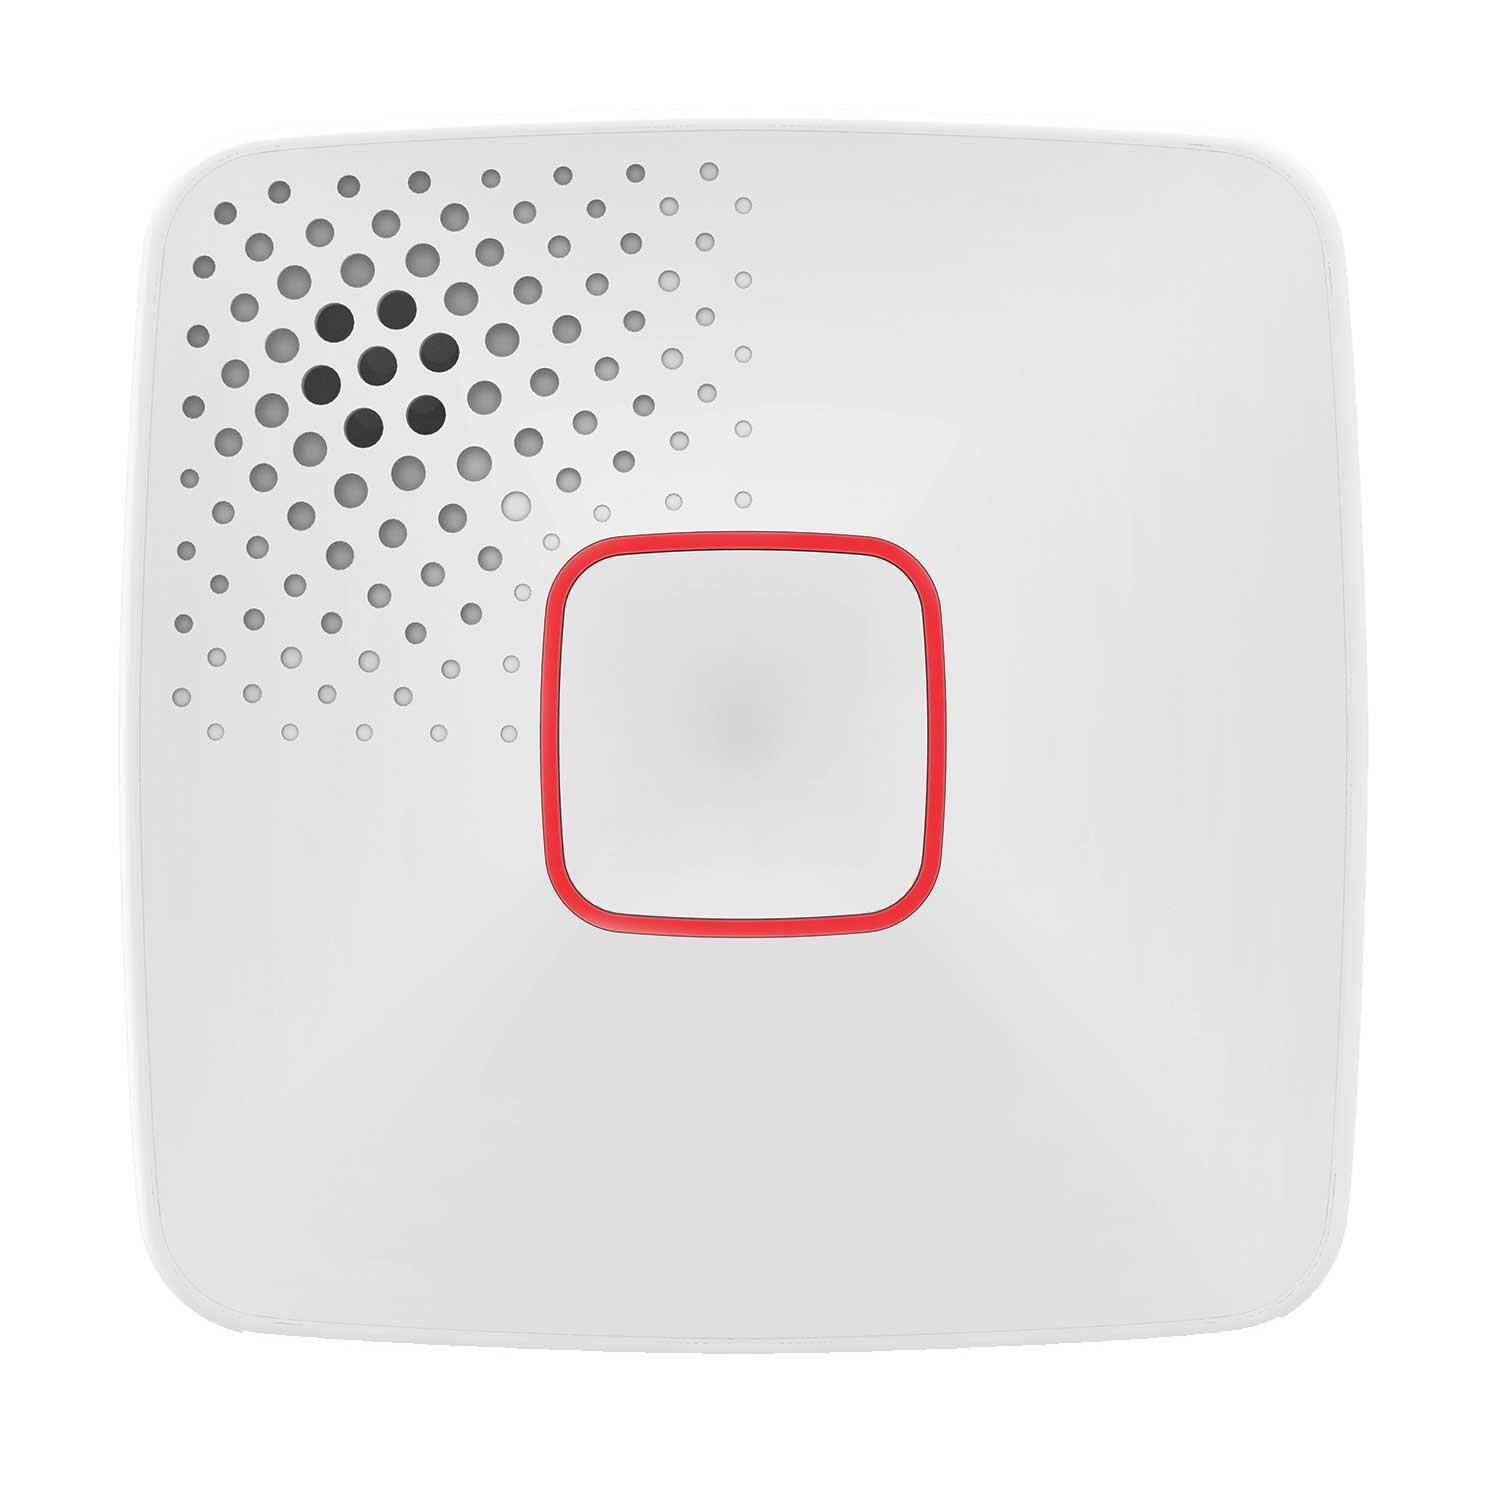 First Alert Onelink Wi-Fi Smoke & Carbon Monoxide Alarm with 10-Year Sealed Battery, HomeKit-enabled - DC10-500